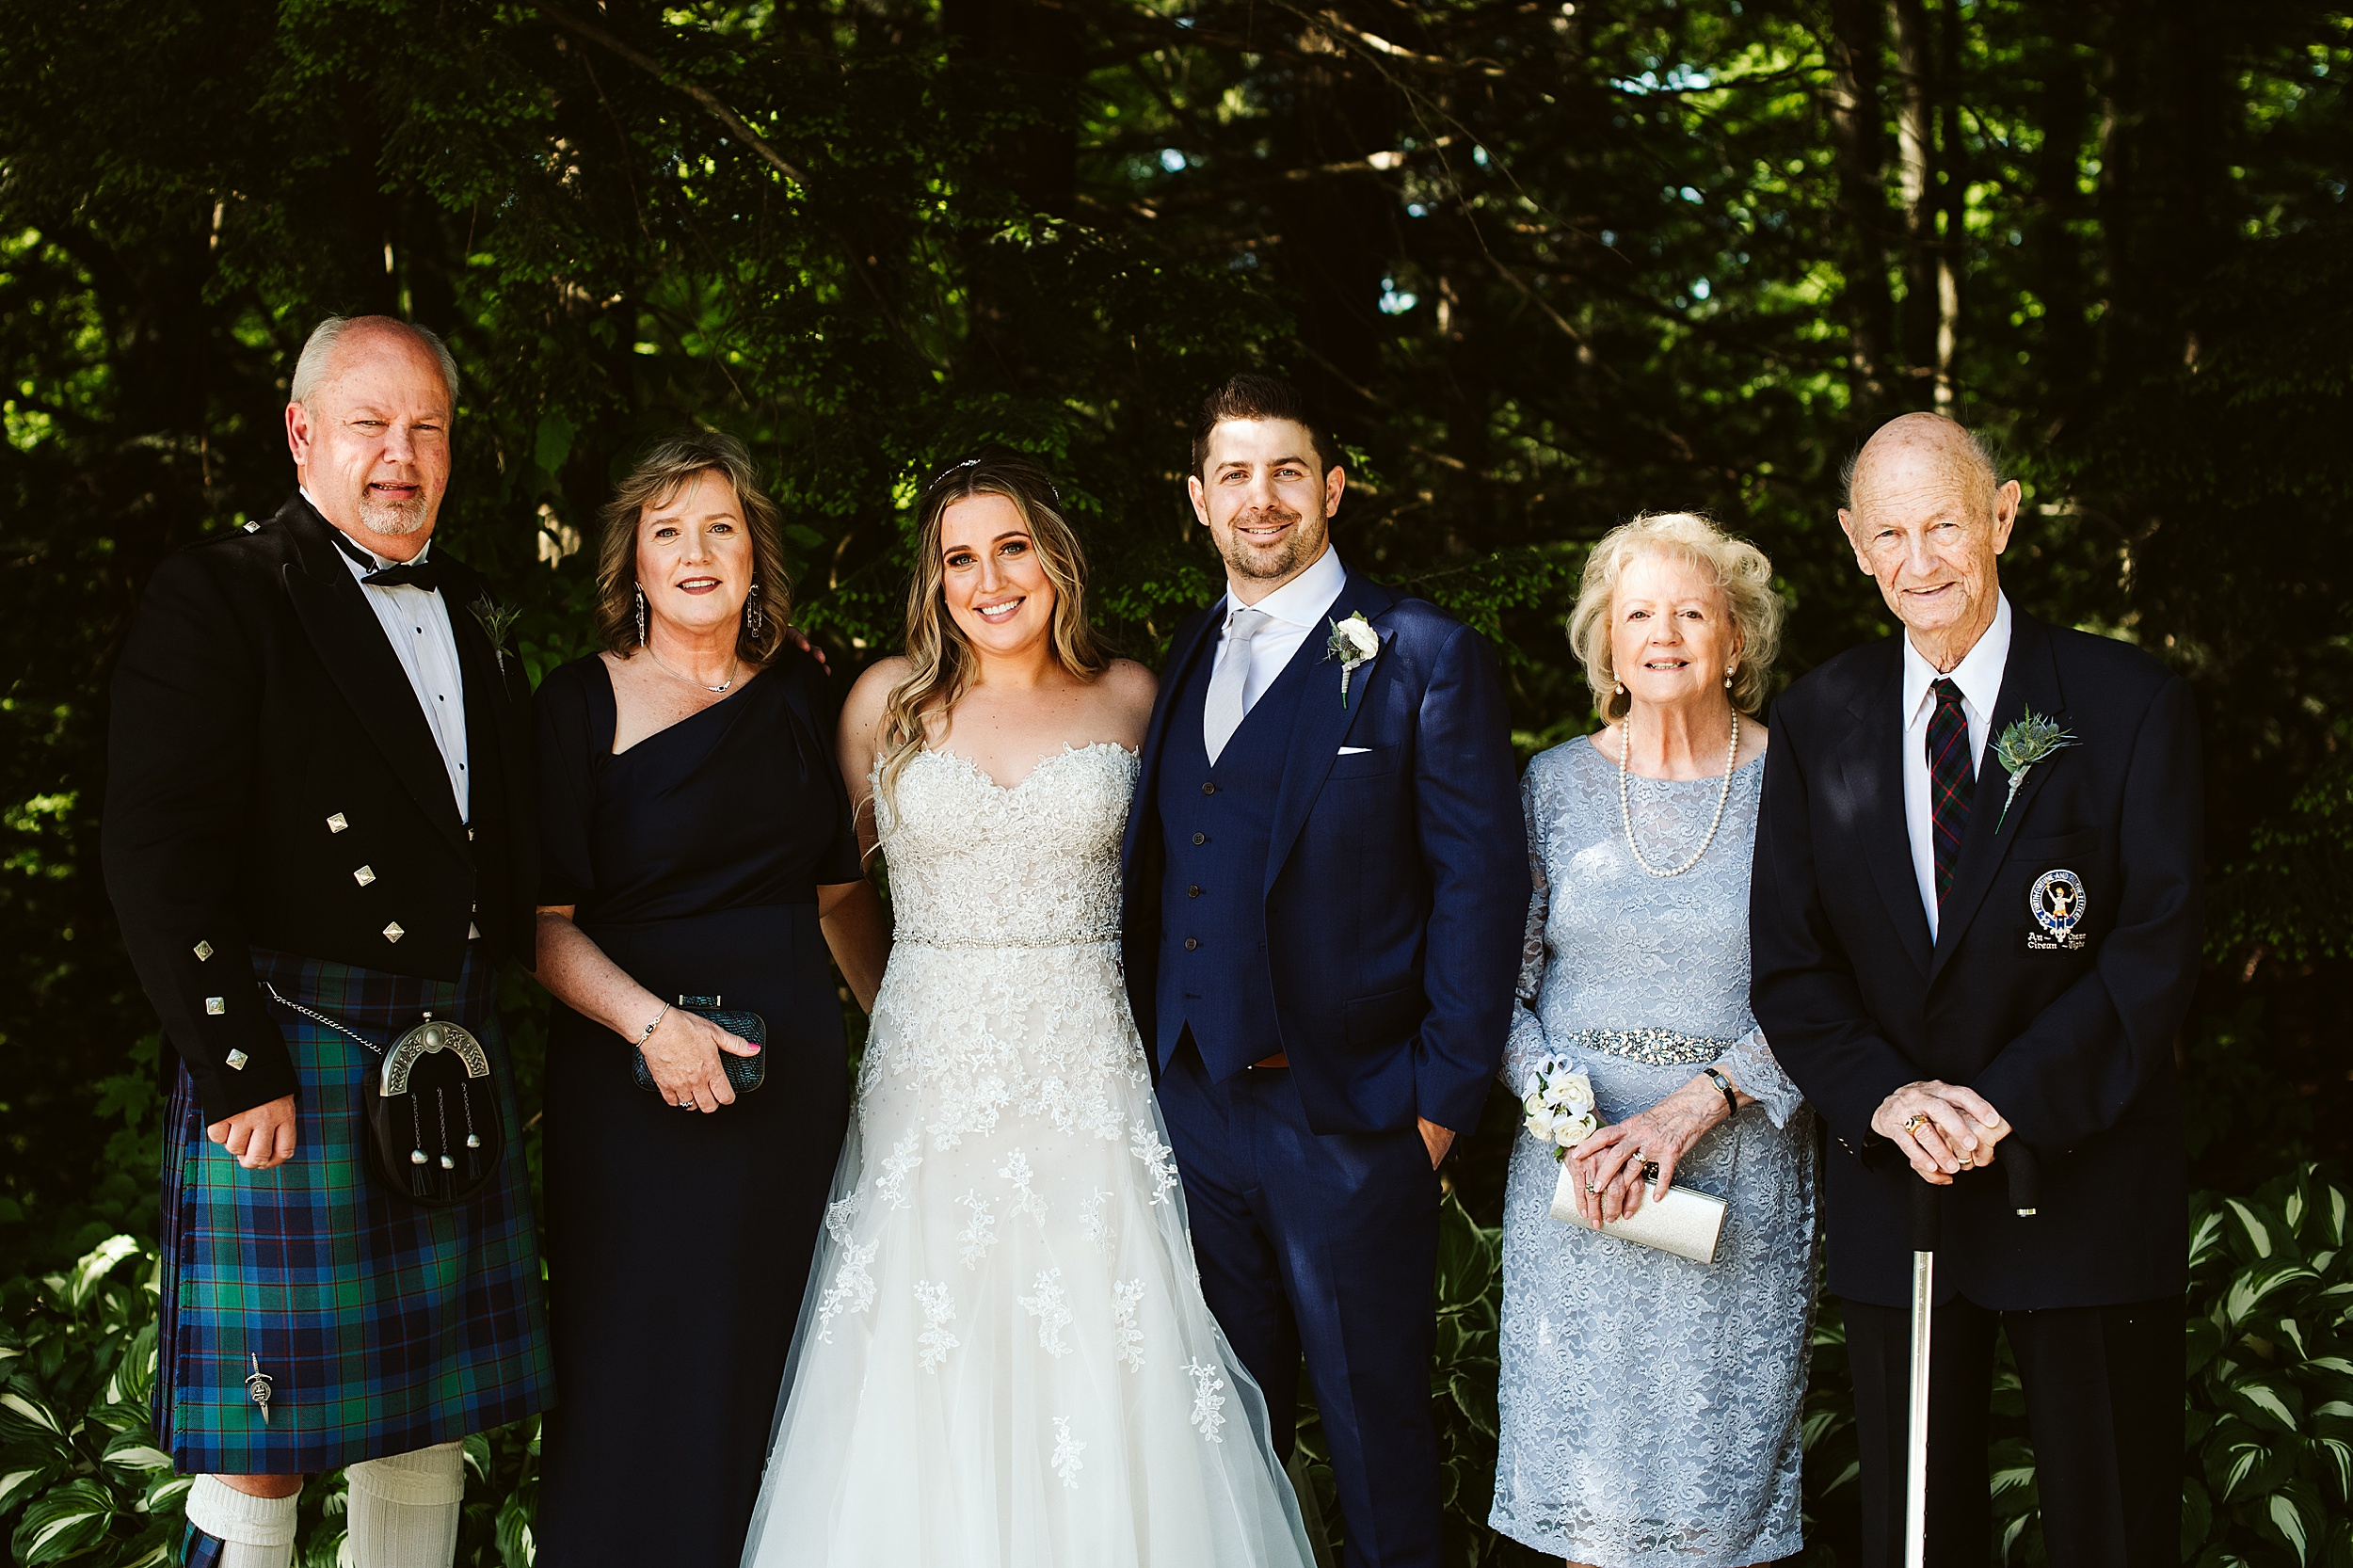 Toronto-Wedding-Photographers-Pheasant-run-golf-club-newmarket_0052.jpg